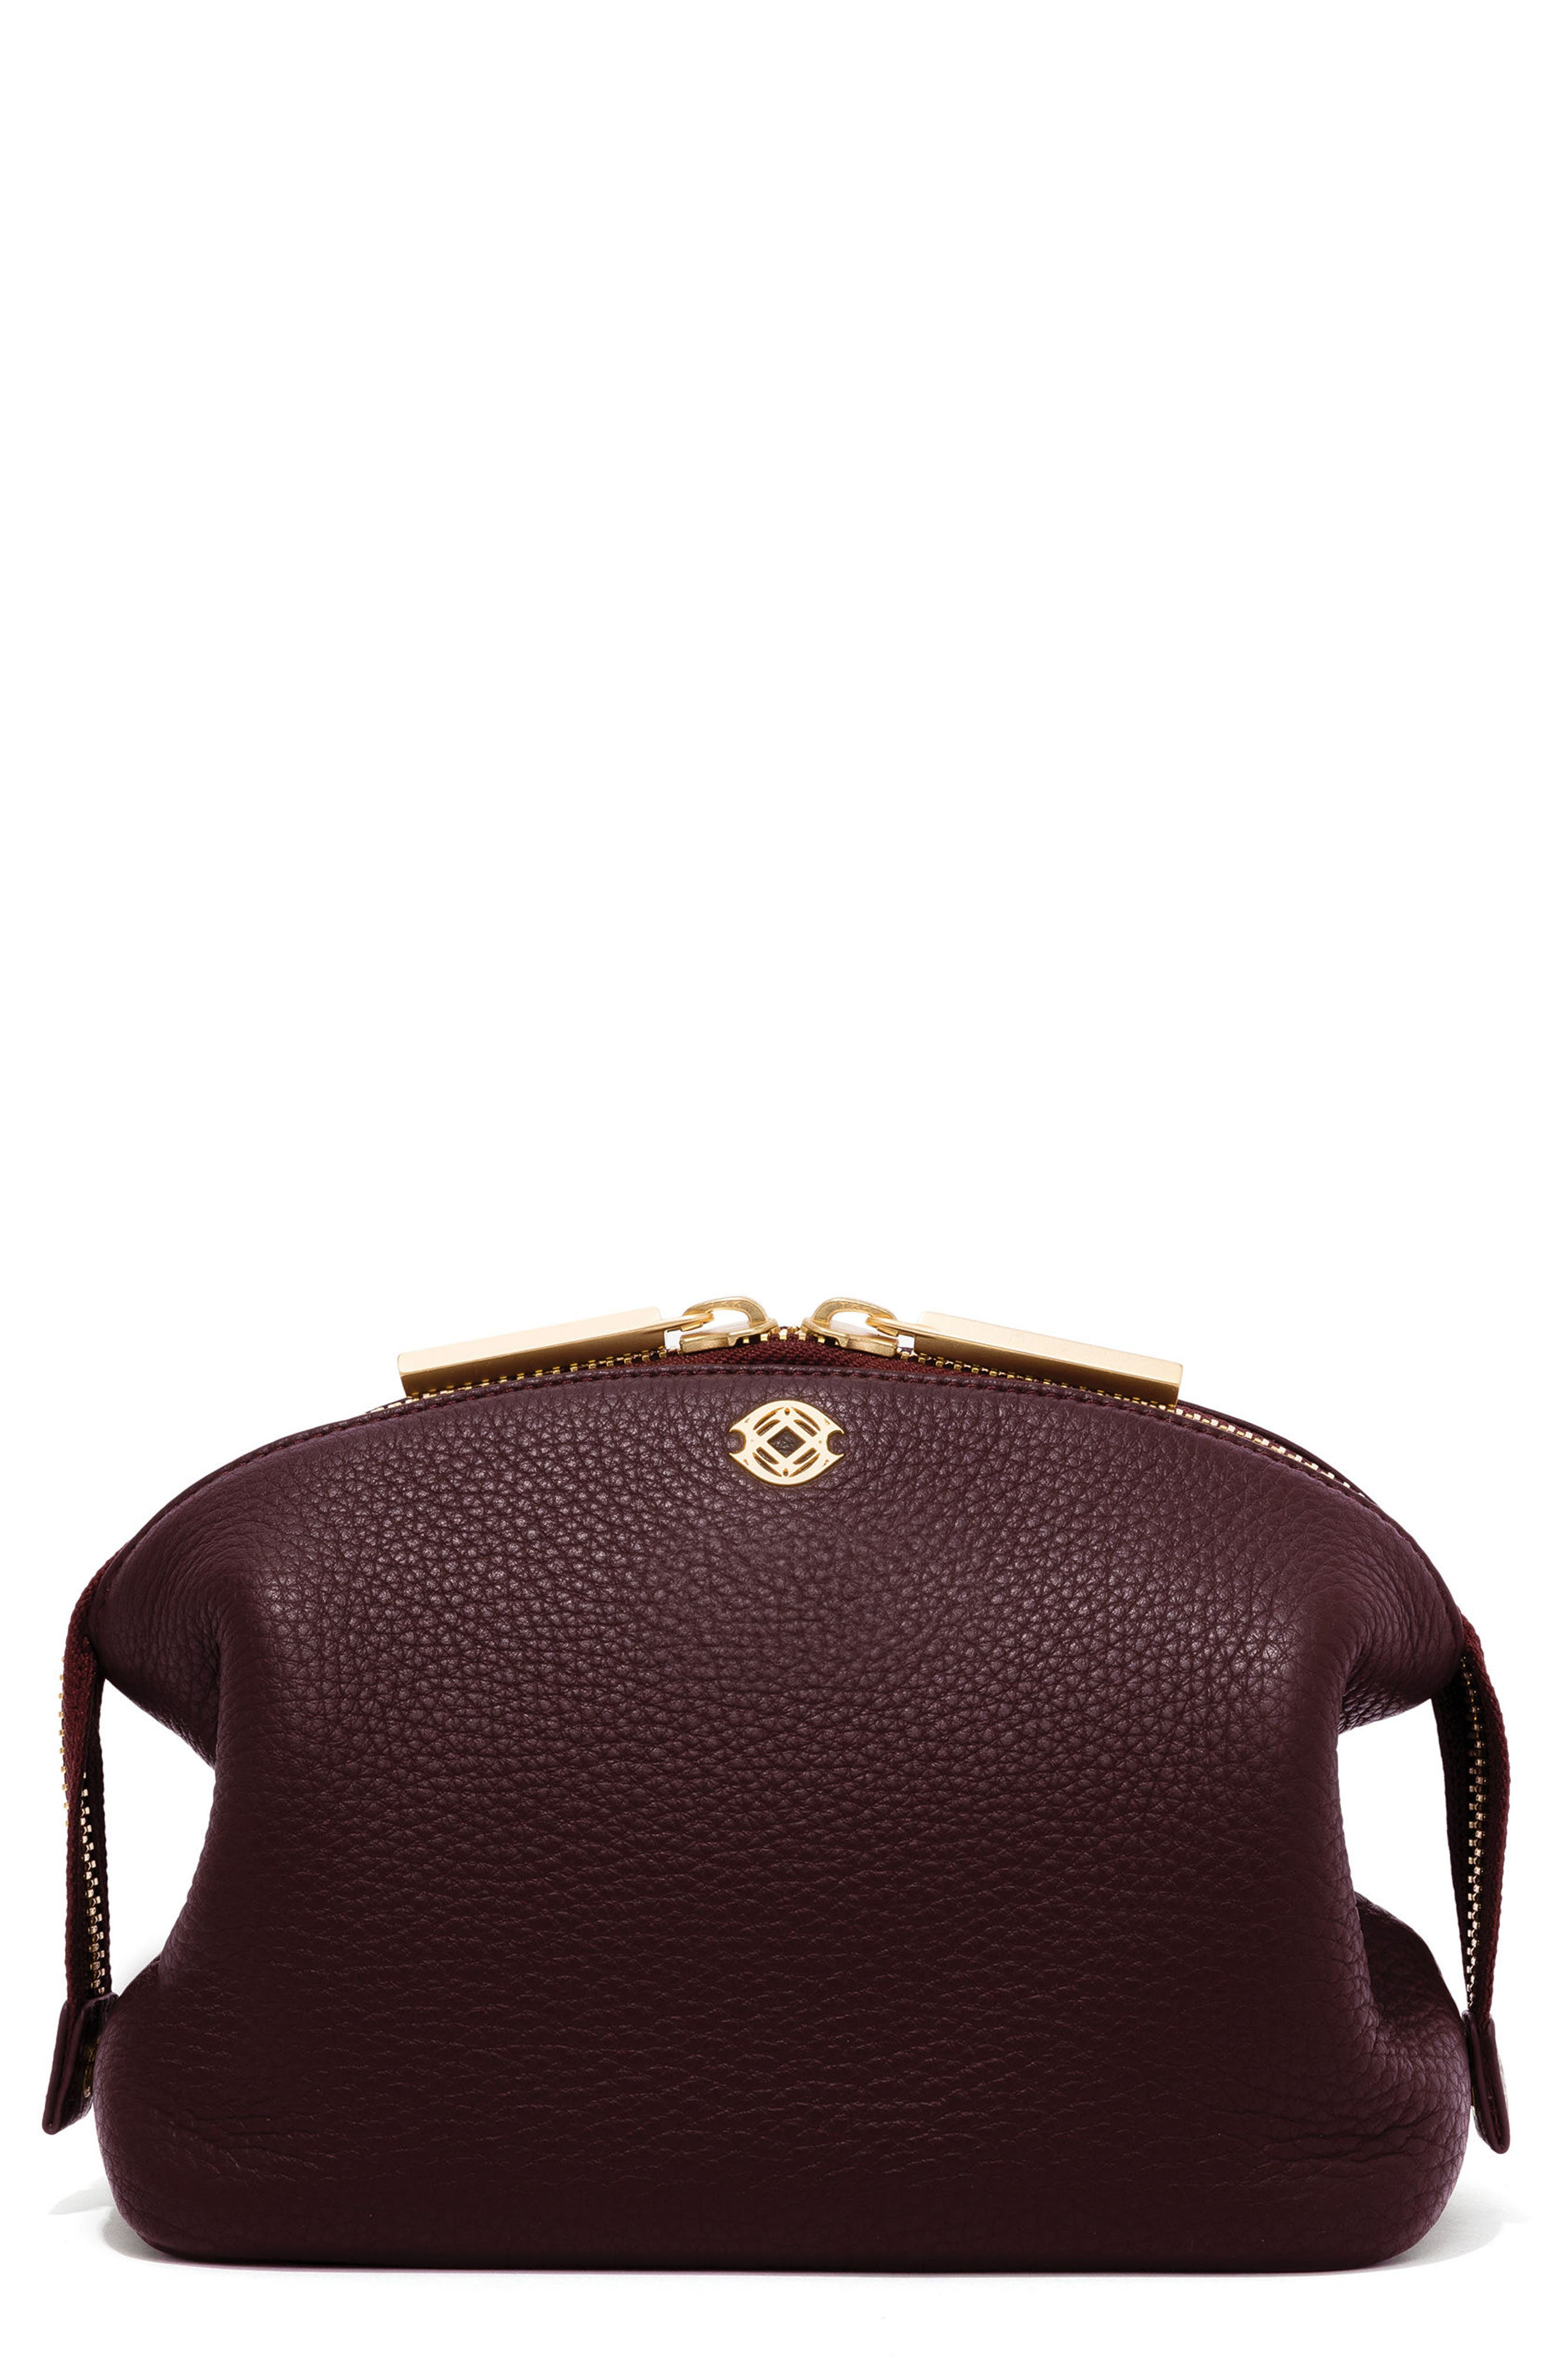 Large Lola Leather Cosmetics Pouch,                         Main,                         color, Oxblood